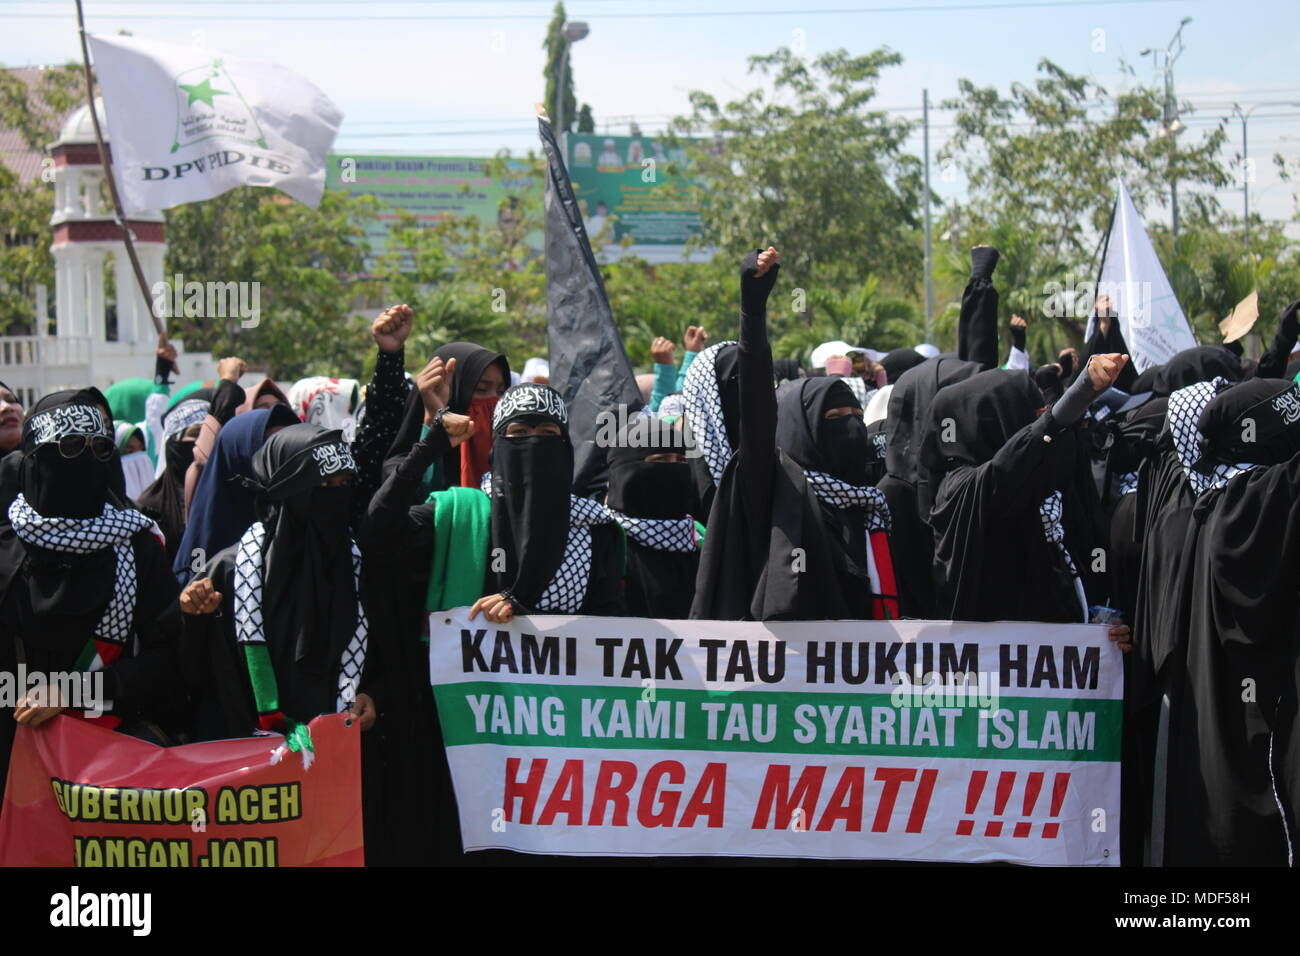 Banda Aceh Indonesia 30th Apr 2015 The Muslim Community In Aceh Has Protests Defending The Islamic Shari A Law In Front Of Aceh Goverment Office They Asked The Aceh Government To Implement The